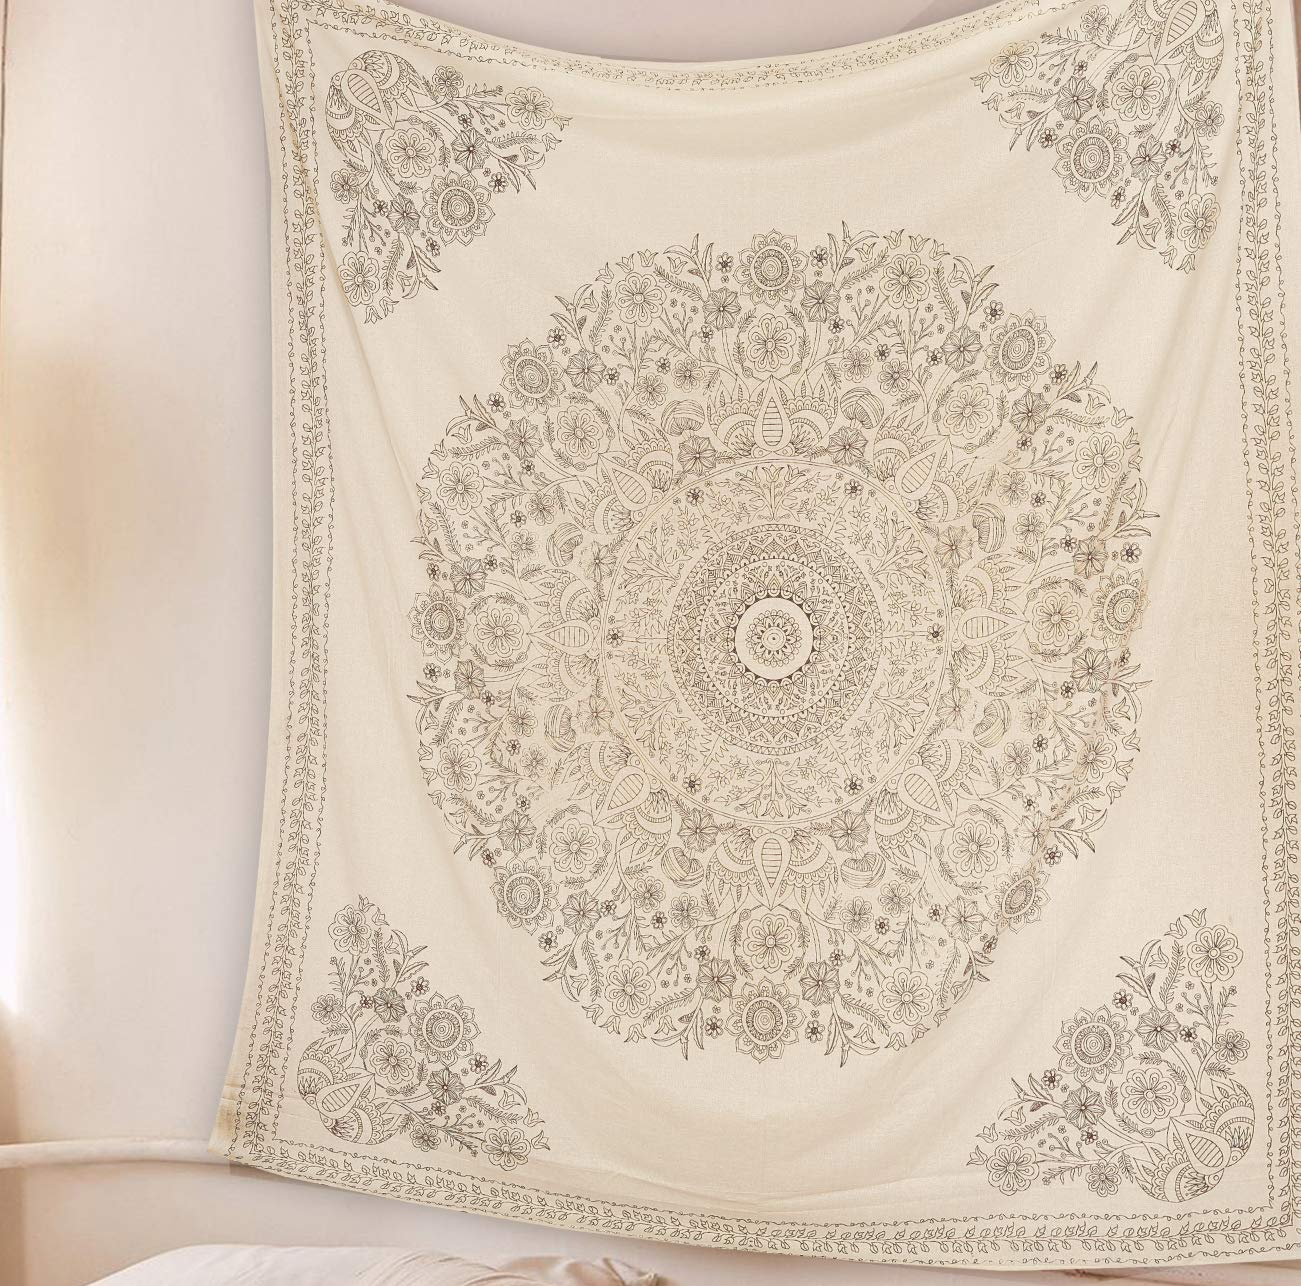 SheetKart Mandala Tapestry Wall Hanging, Medallion Indian Cotton Printed Floral Art, Wall Décor Tapestries - Large, Beige